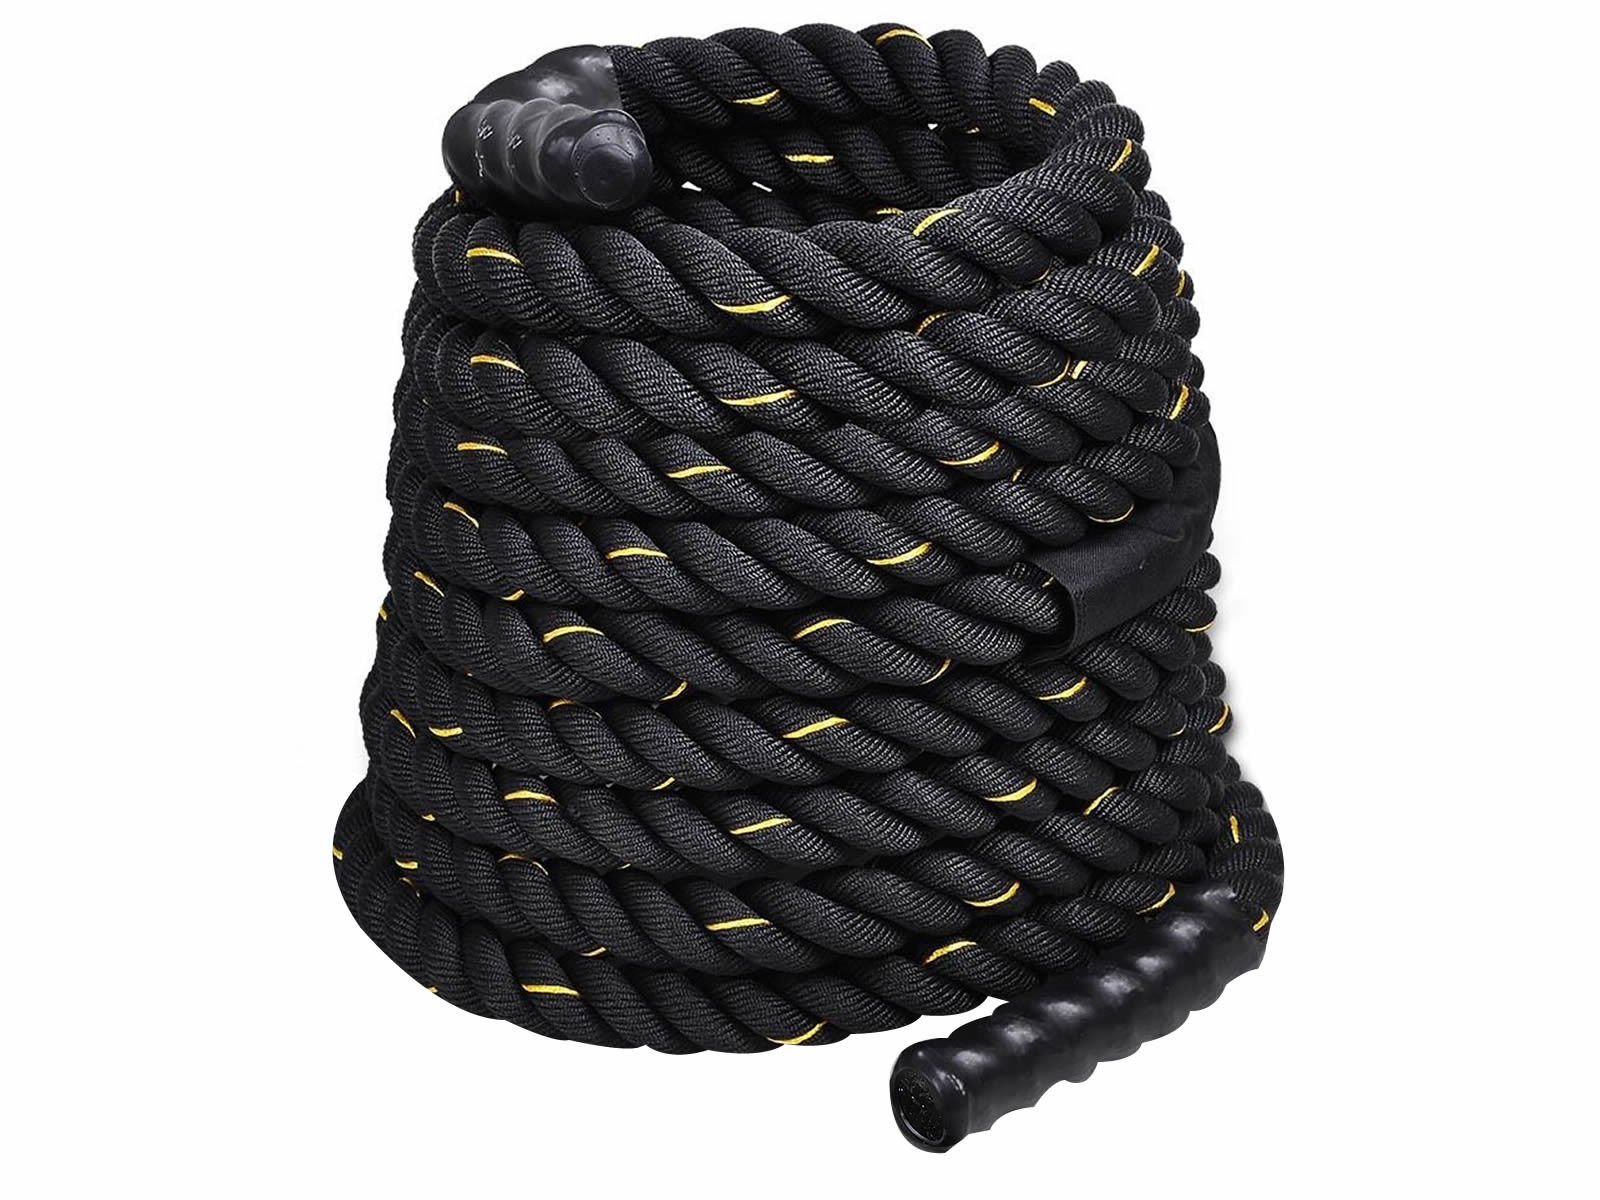 Battle Rope Training Undulation Extremely Workout Stamina for Gain Lean Muscle by DTOFREE (Image #5)